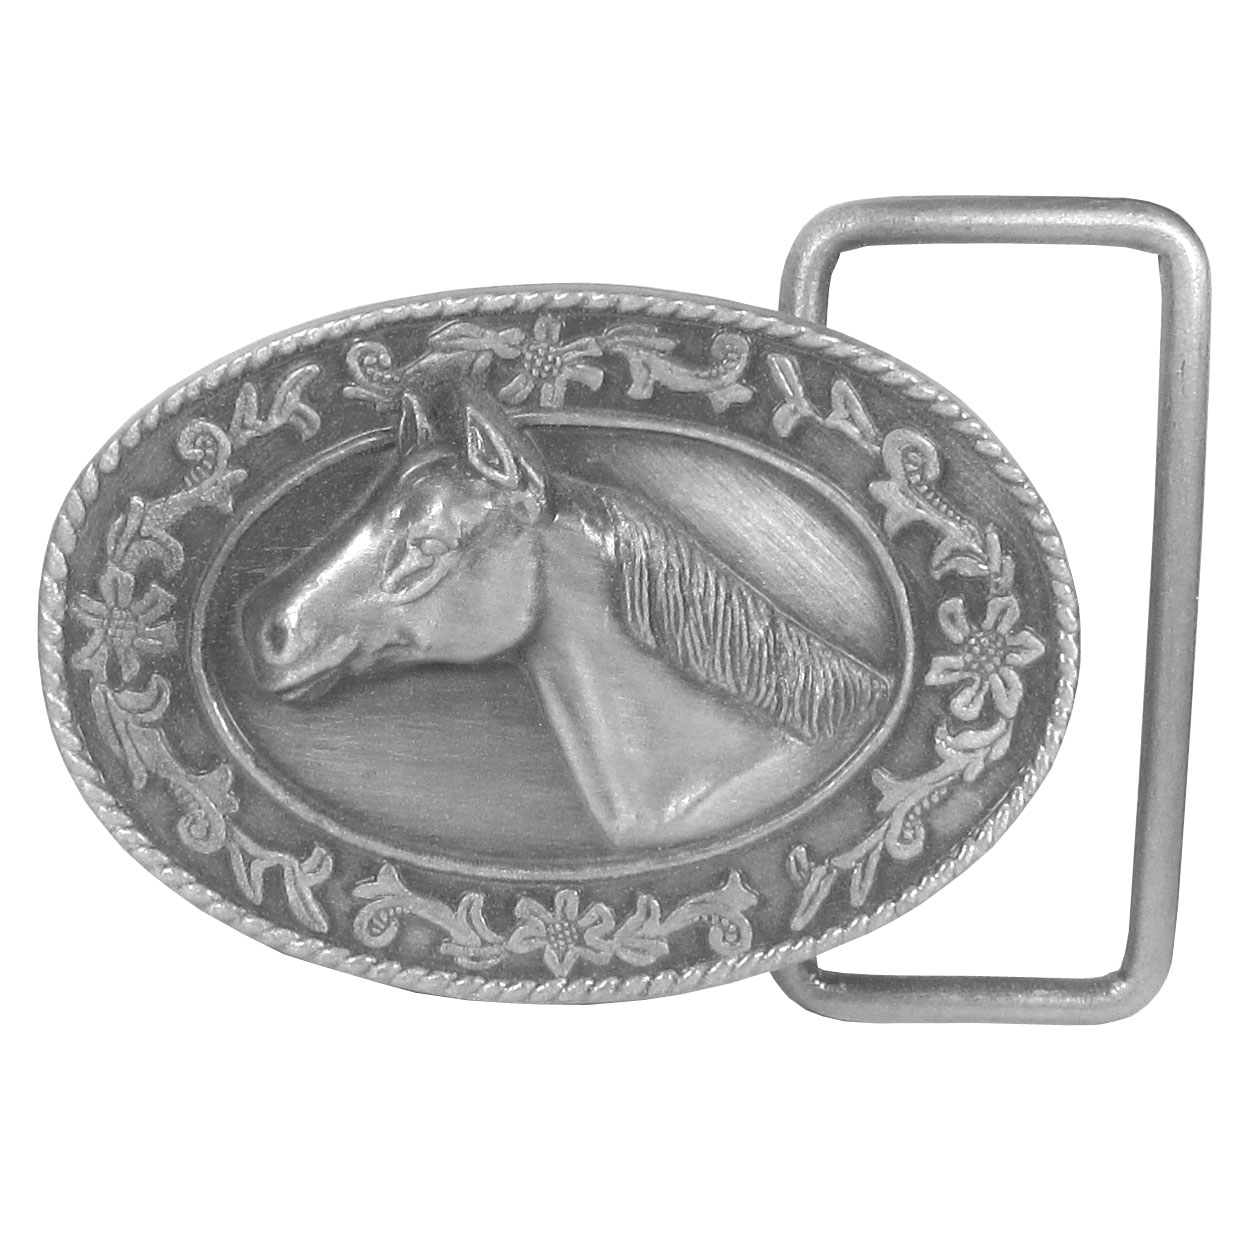 Horse Head Antiqued Belt Buckle - Finely sculpted and intricately designed belt buckle. Our unique designs often become collector's items.